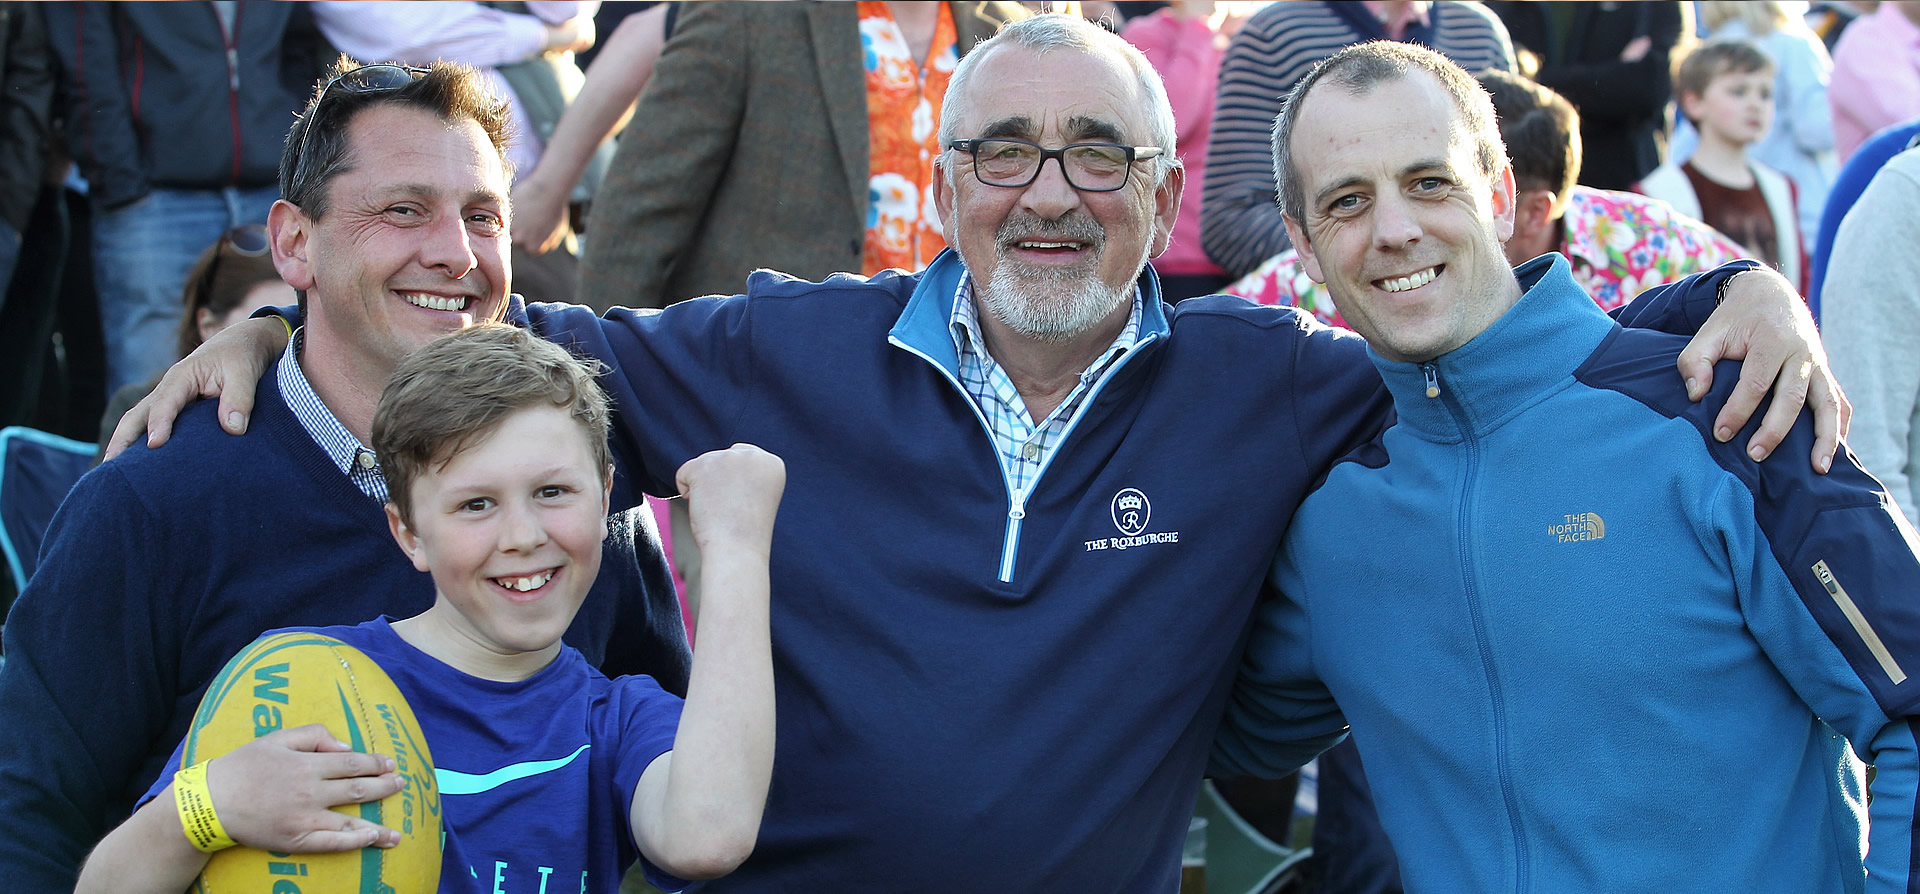 Melrose Sevens enjoyed by families